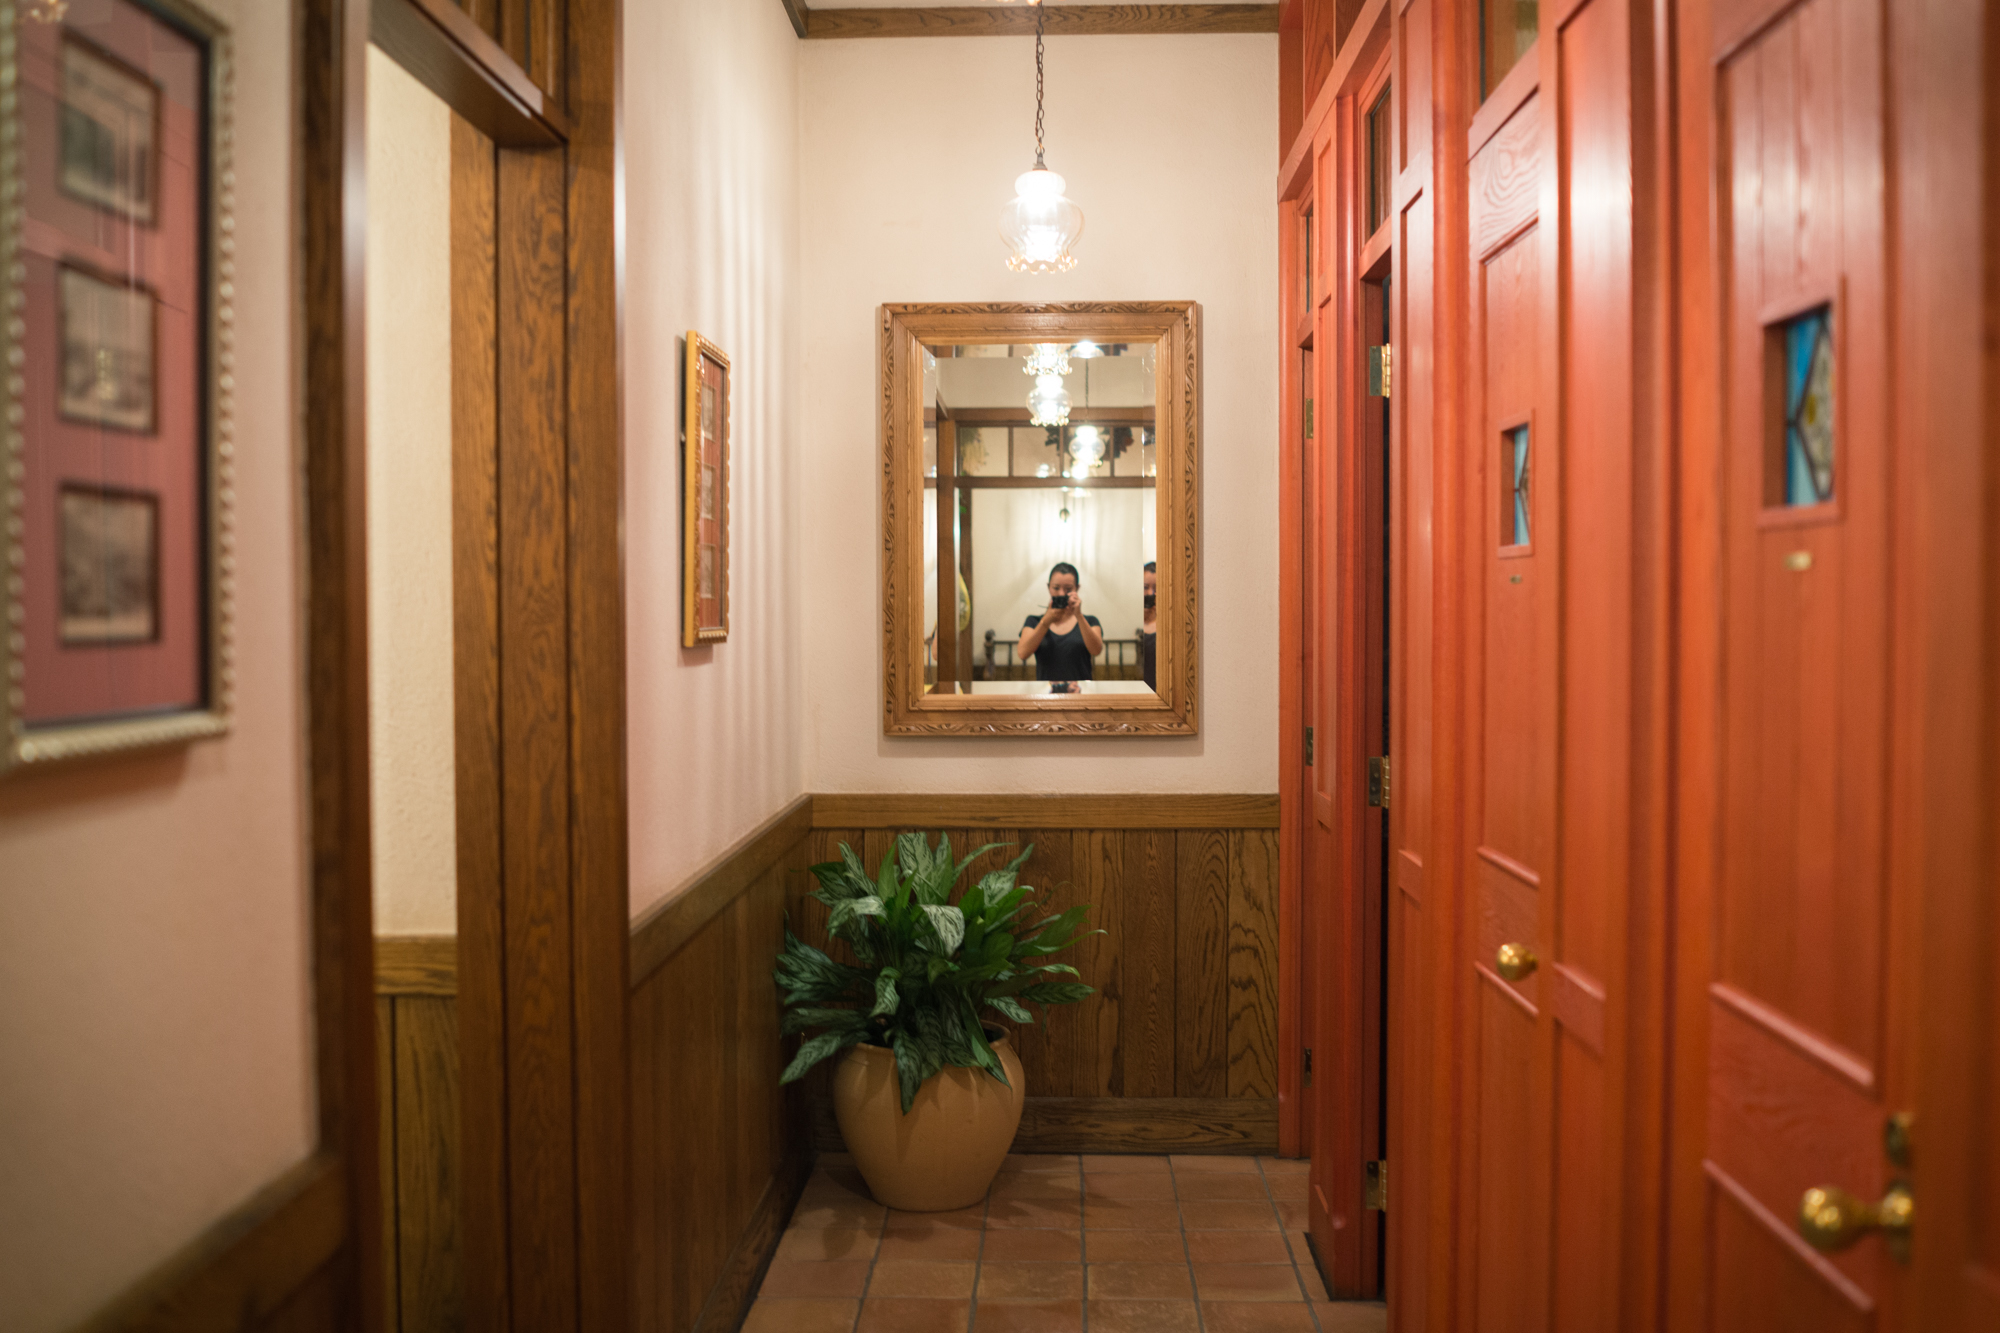 Bathroom in Ghibli Museum